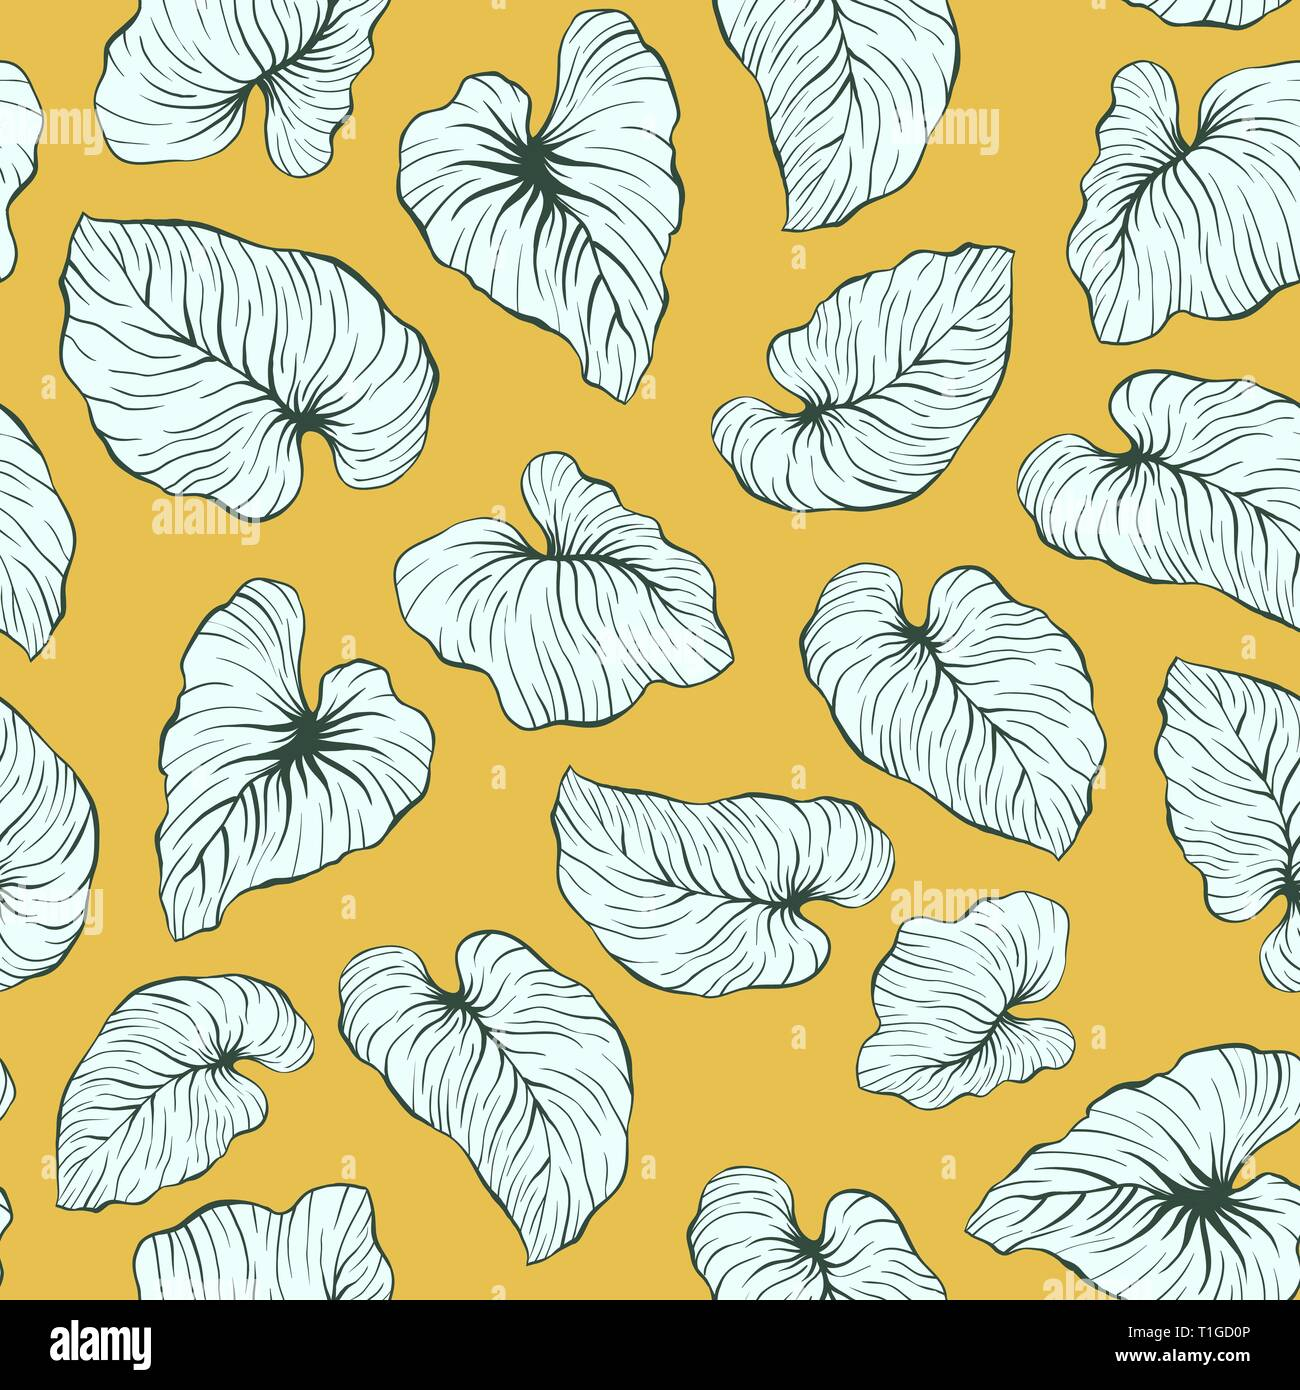 Yellow Falling Palm Leaves Repeat Seamless Vector Pattern - Stock Vector